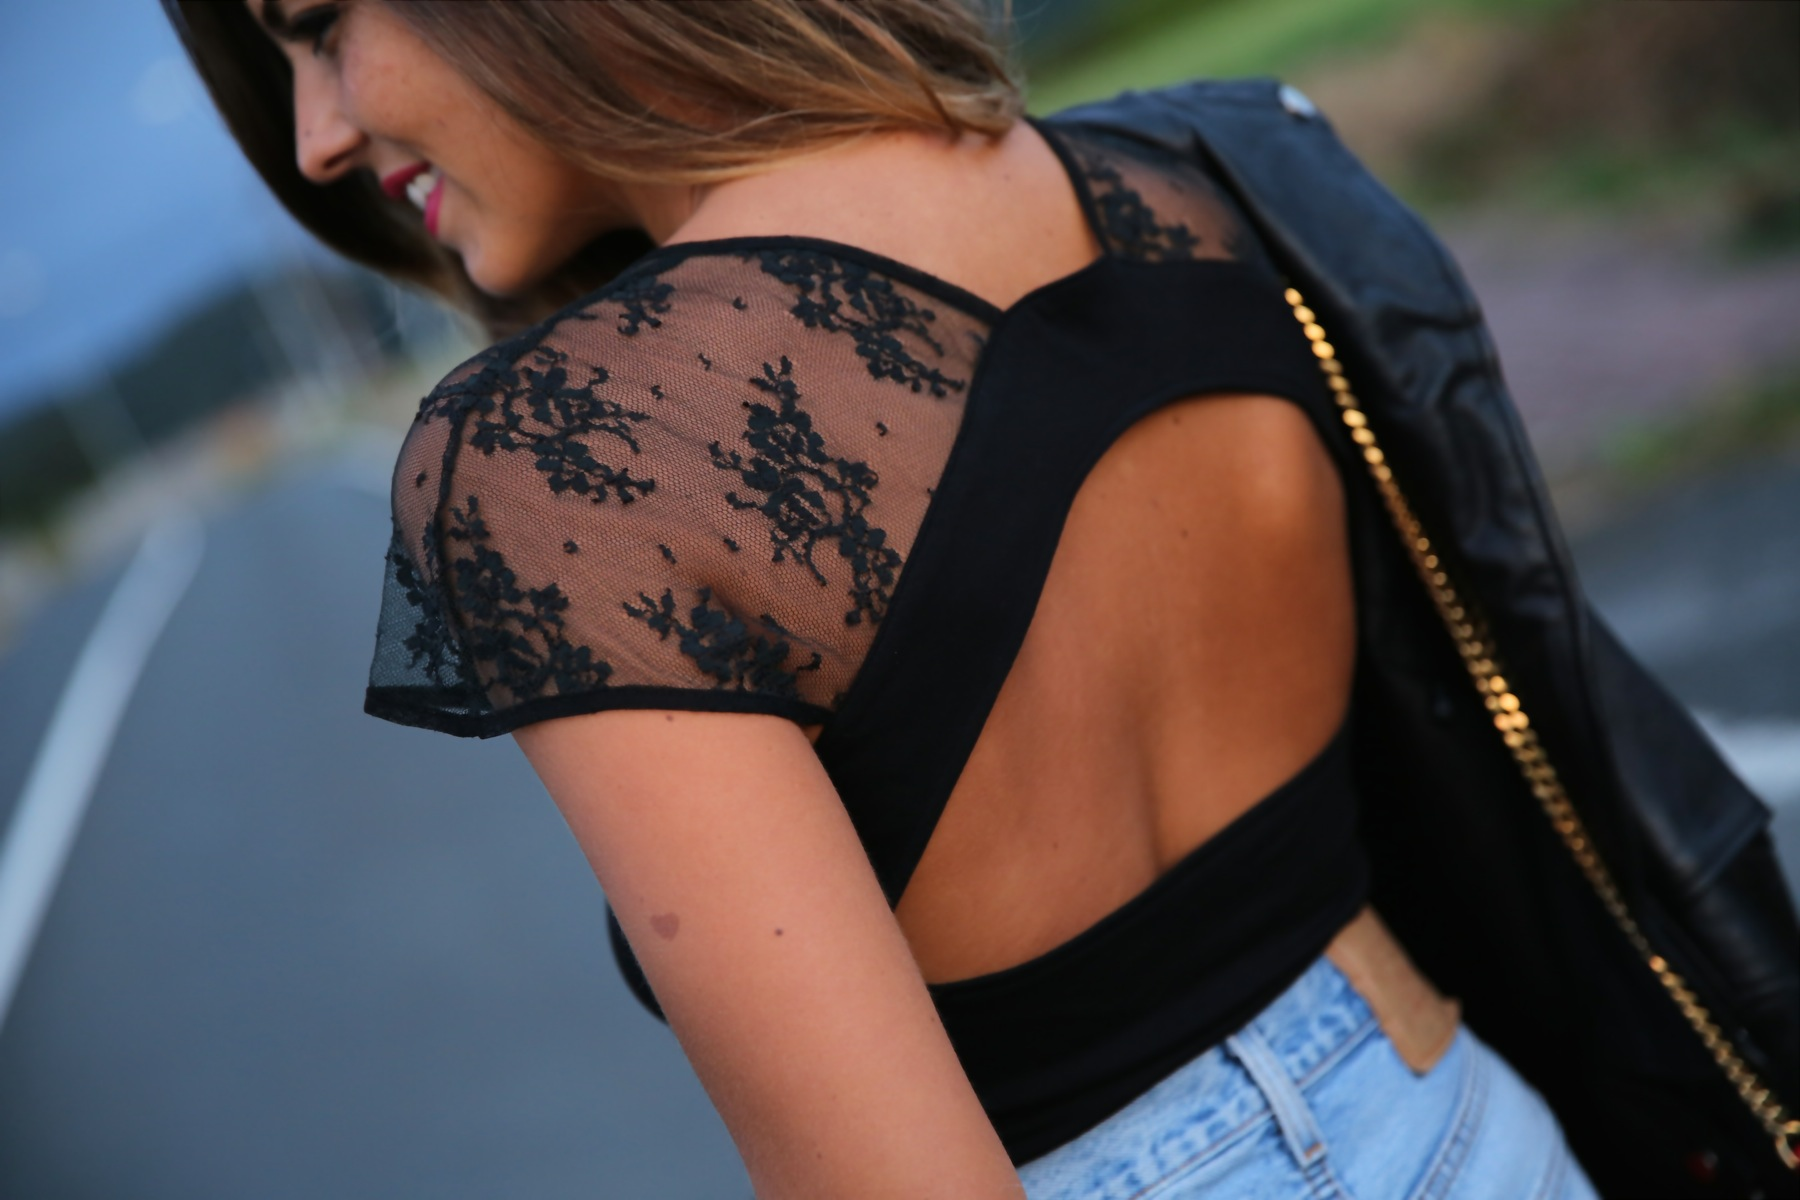 trendy_taste-look-outfit-street_style-ootd-blog-blogger-fashion_spain-moda_españa-denim_shorts-shorts_vaqueros-chaqueta_cuero-leather_jacket-ysl-saint_laurent-2